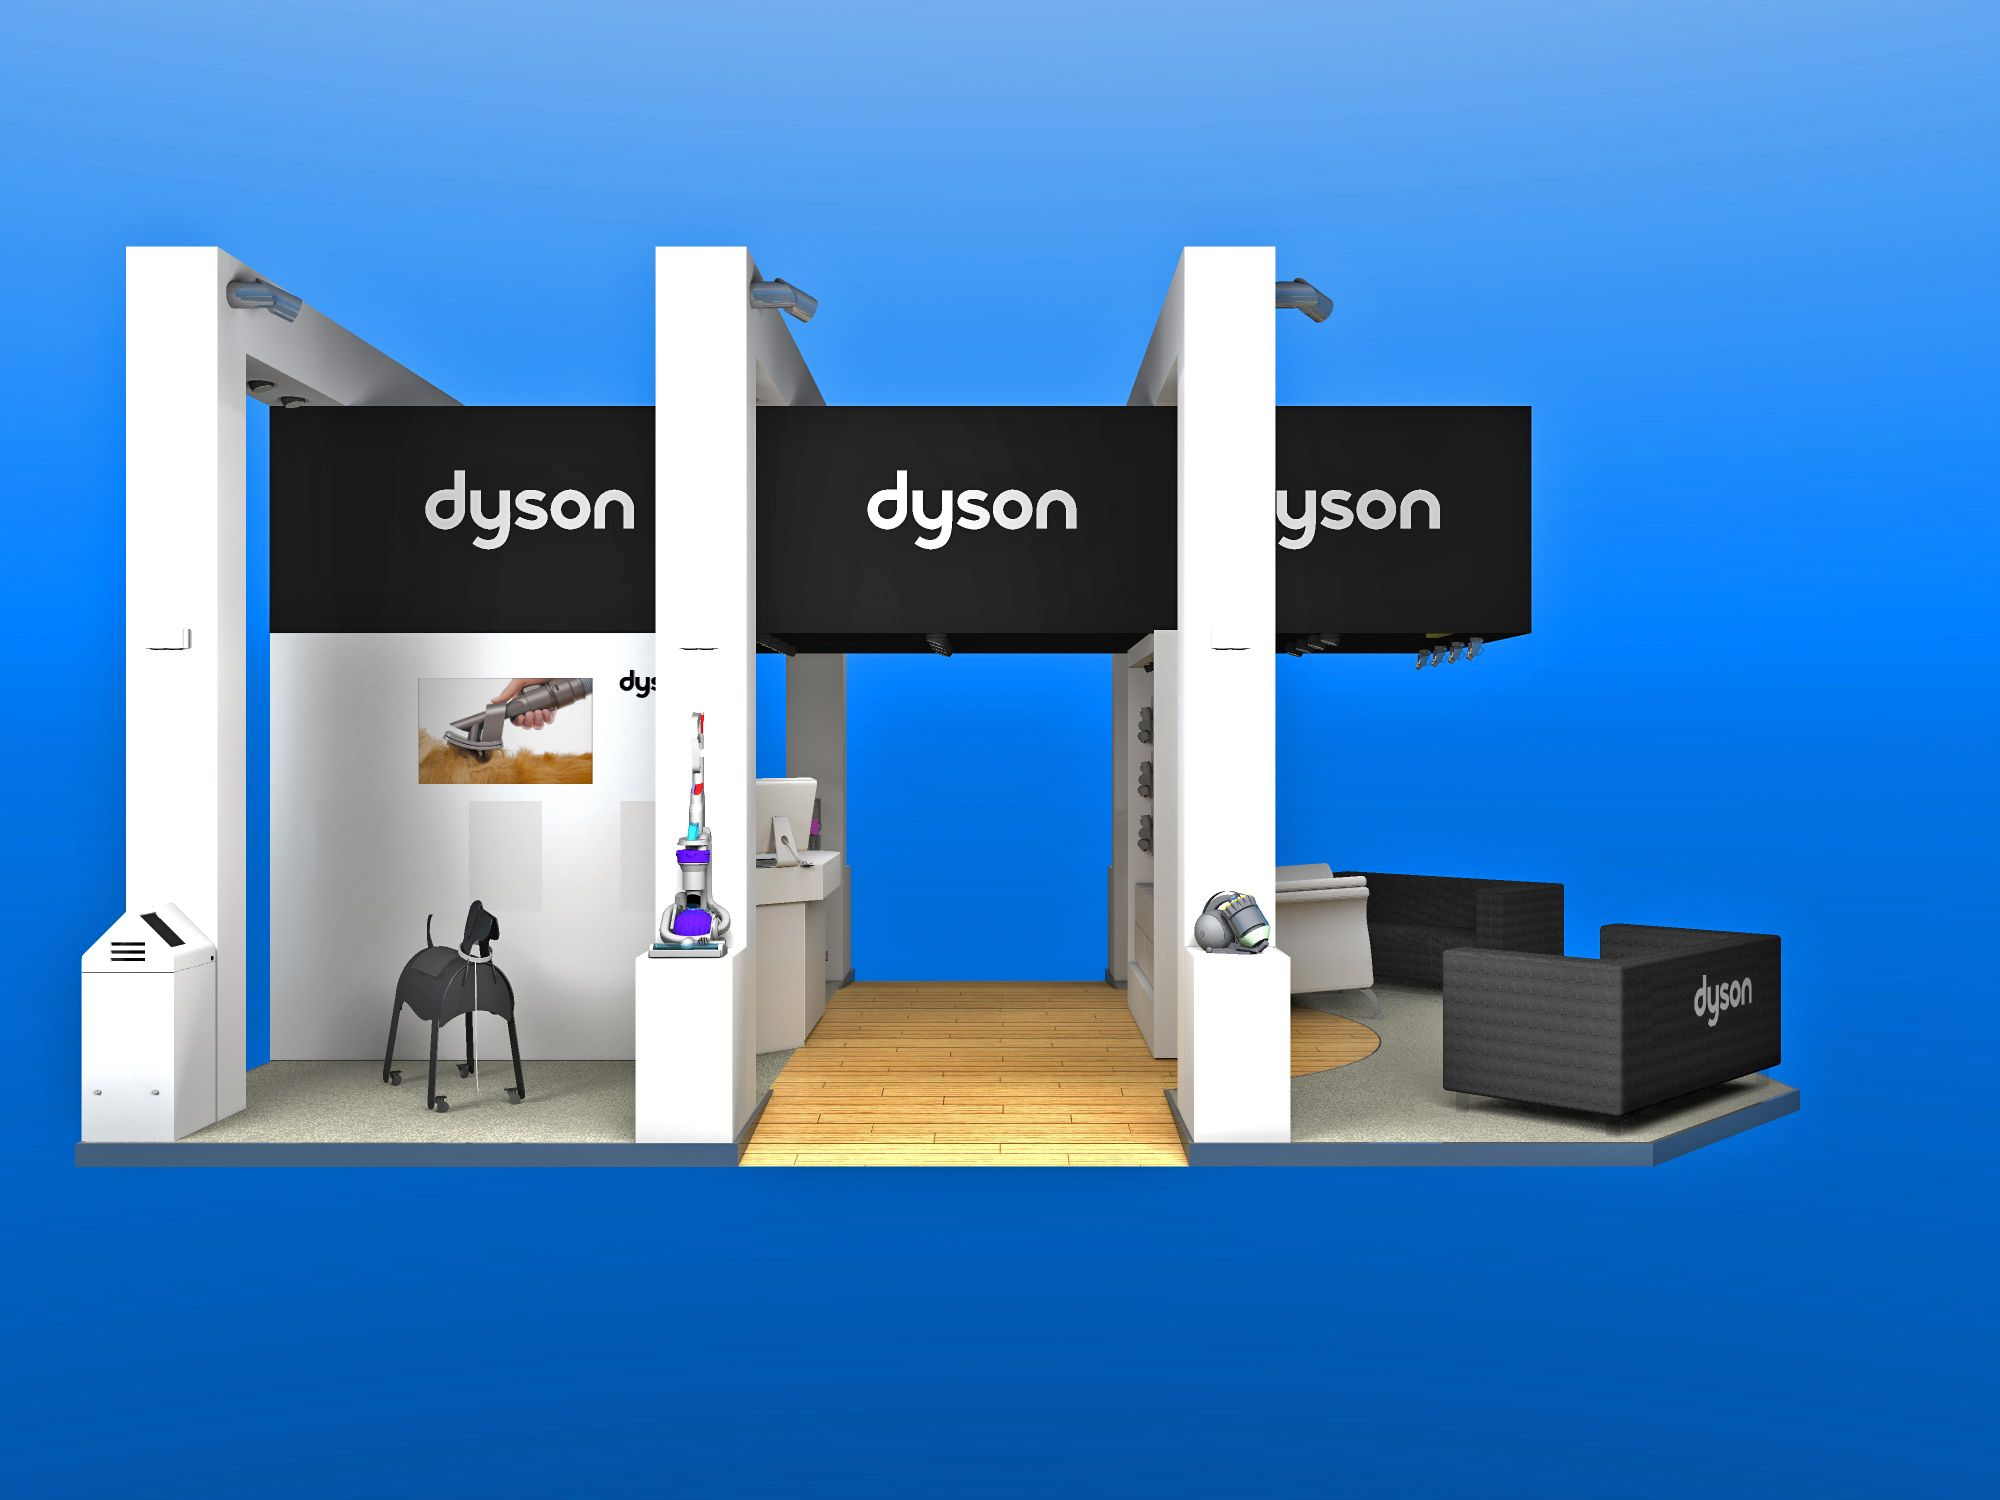 Freelance Exhibition Stand Design : Dyson exhibition stand for the crufts dog show modelled